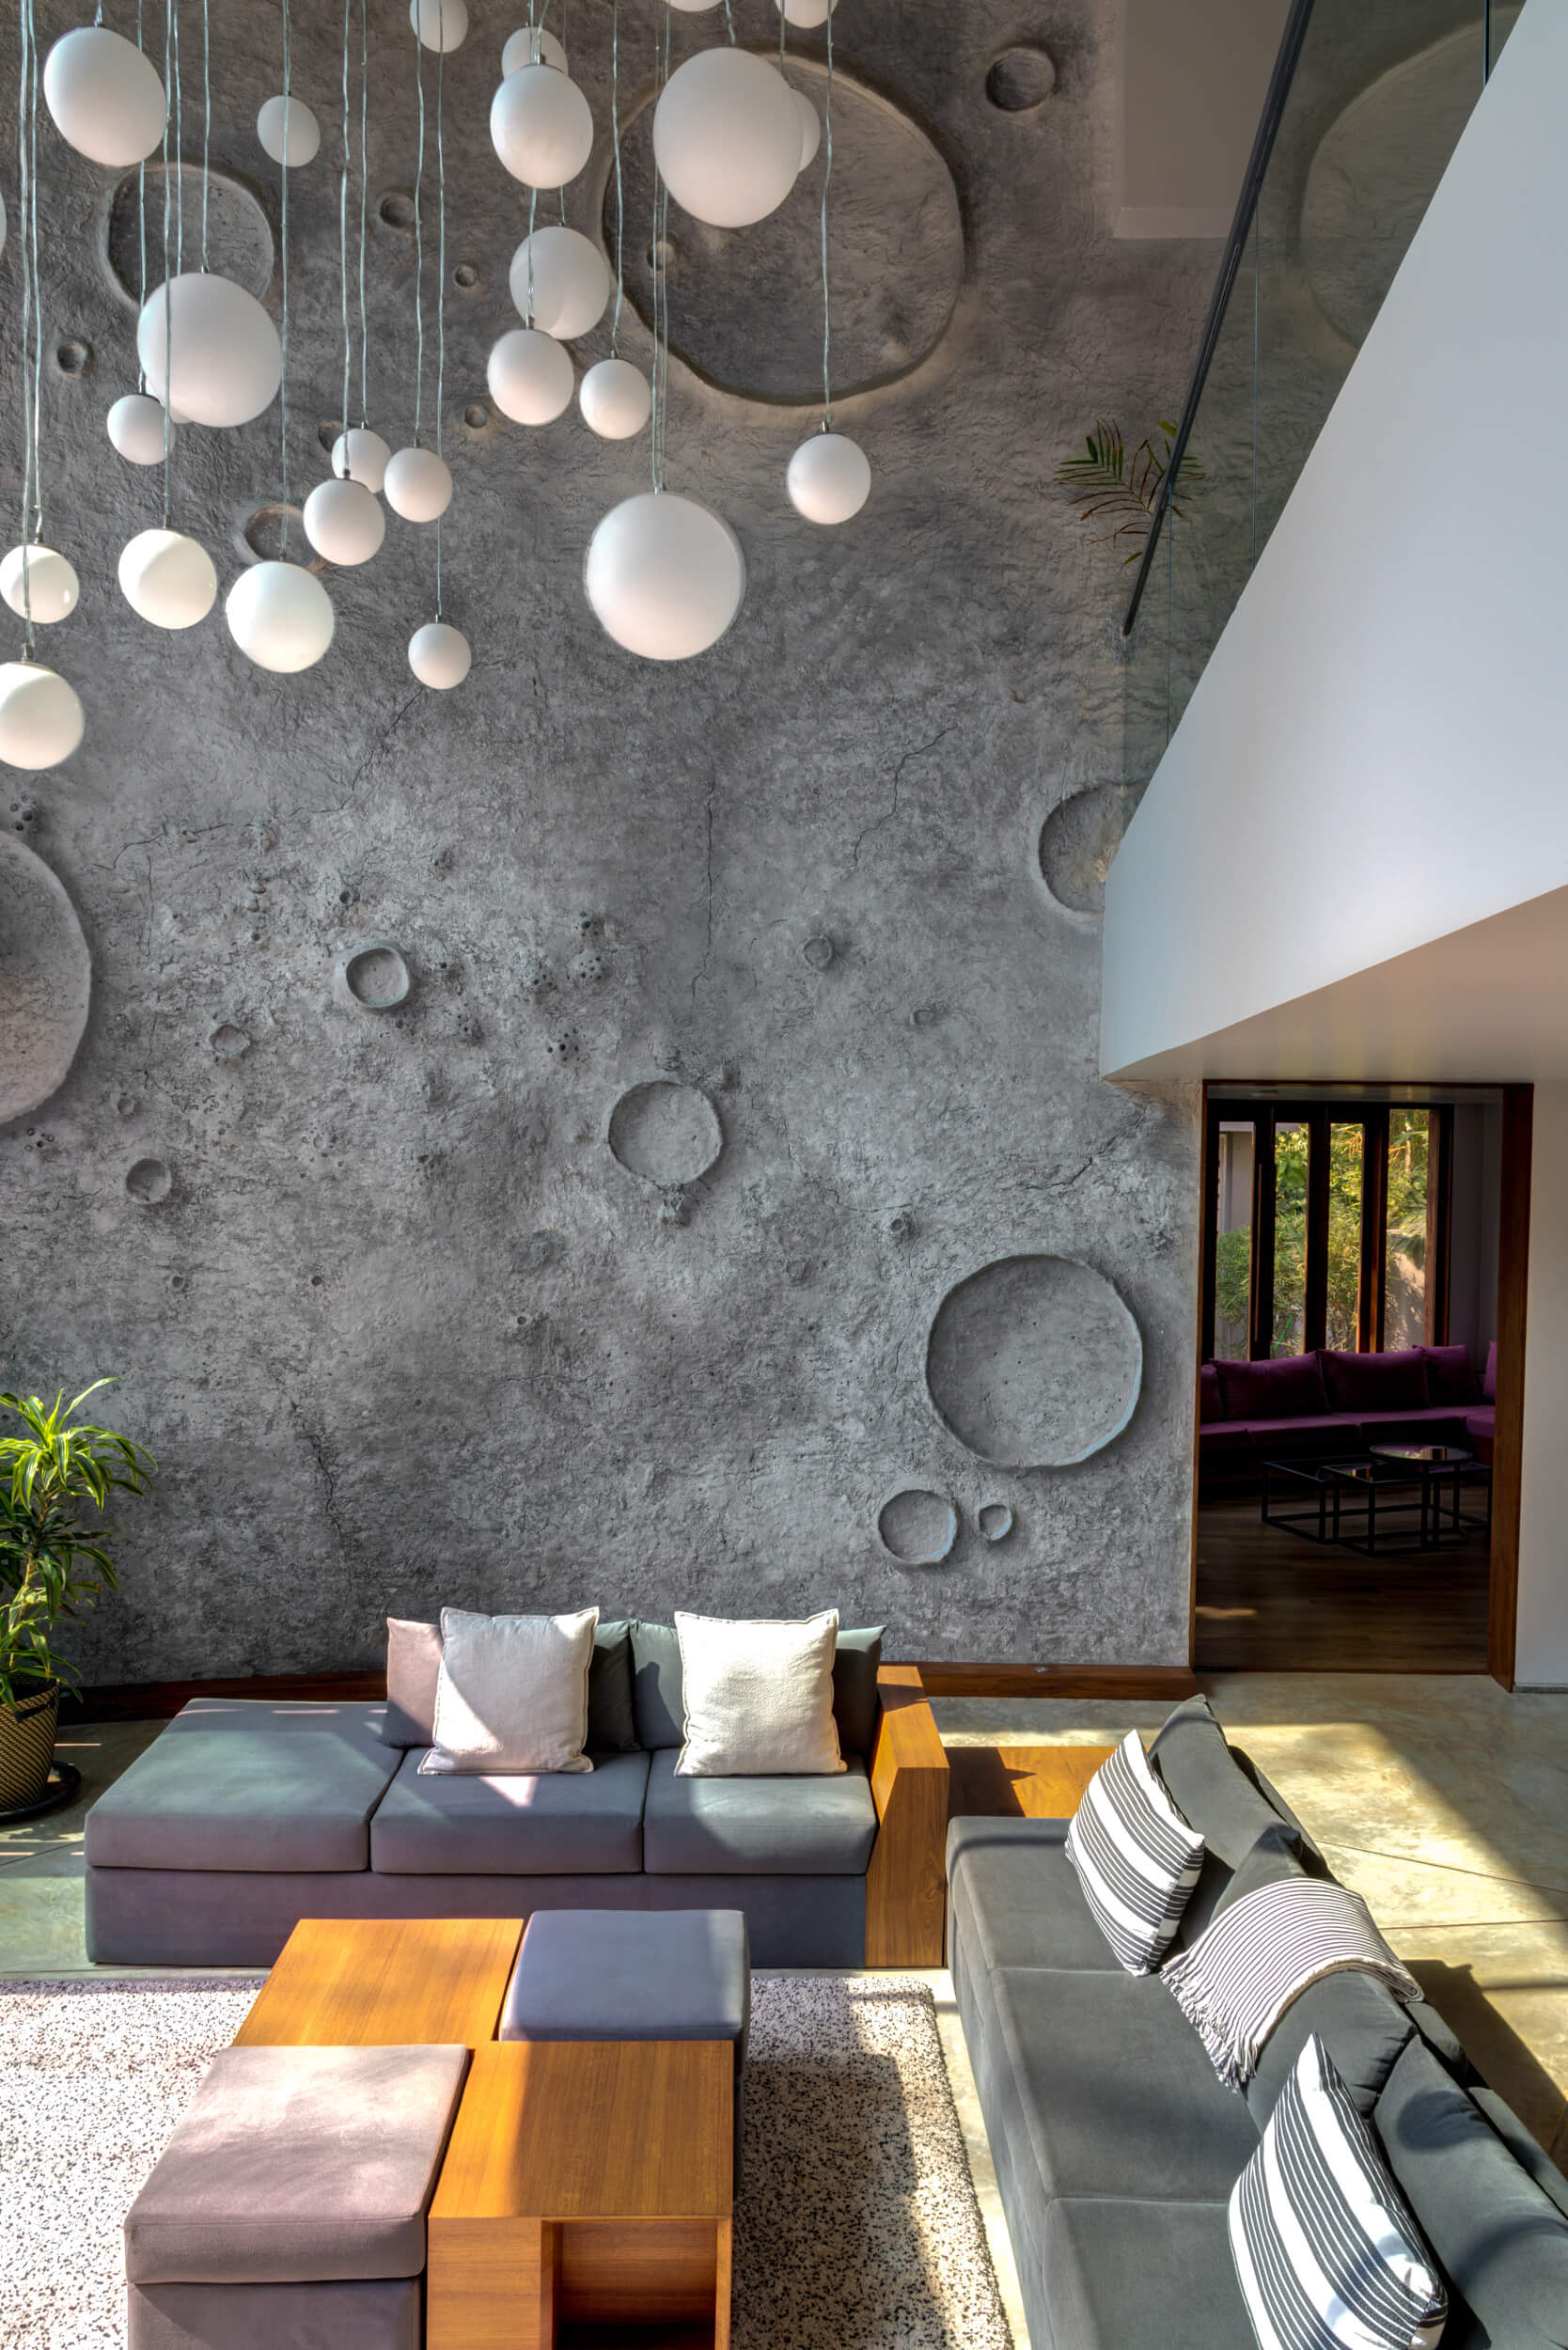 Crater like textured wall and chandelier in Lua's living room | Lua and Terra Si-oul villas by Kriss Real Estate and SAV architects | STIRworld